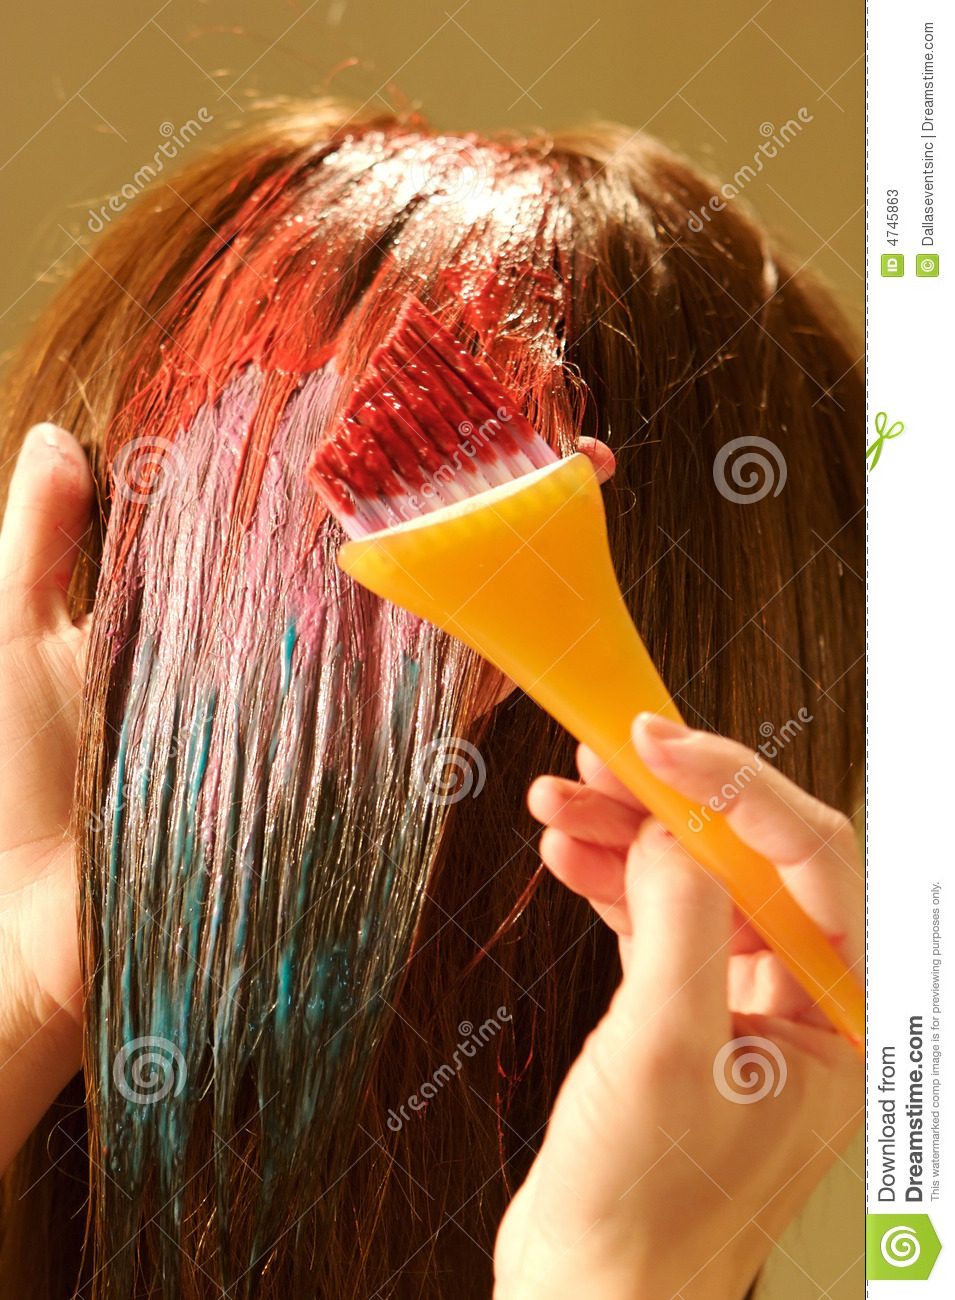 Pretty Color To Dye Your Hair: Female Hair Coloring At A Salon Stock Photos